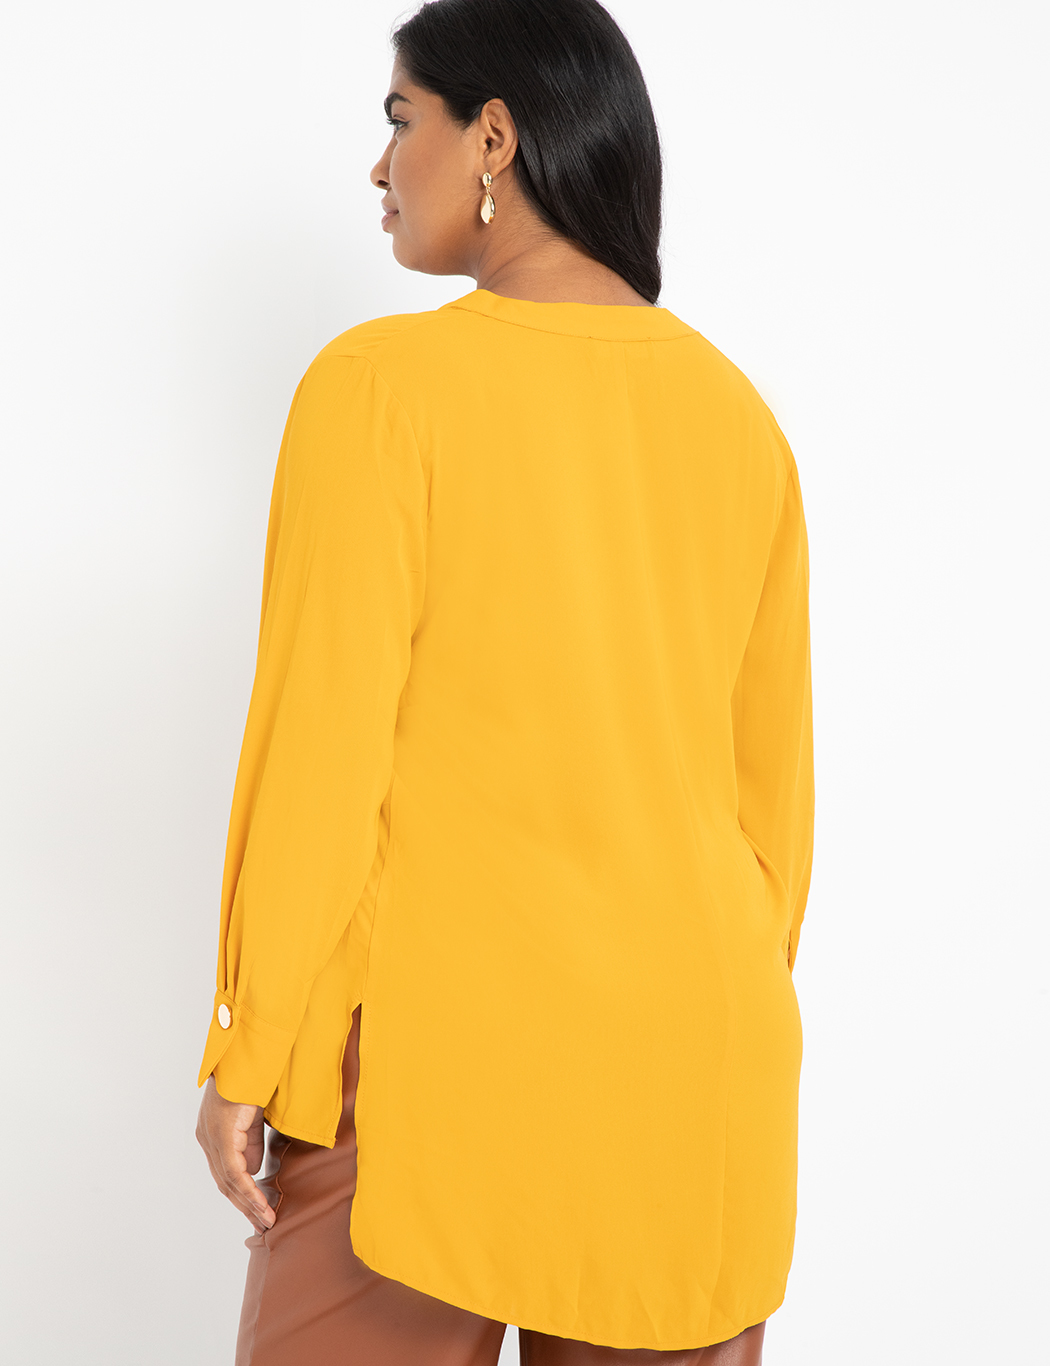 Mandarin Collar Tunic